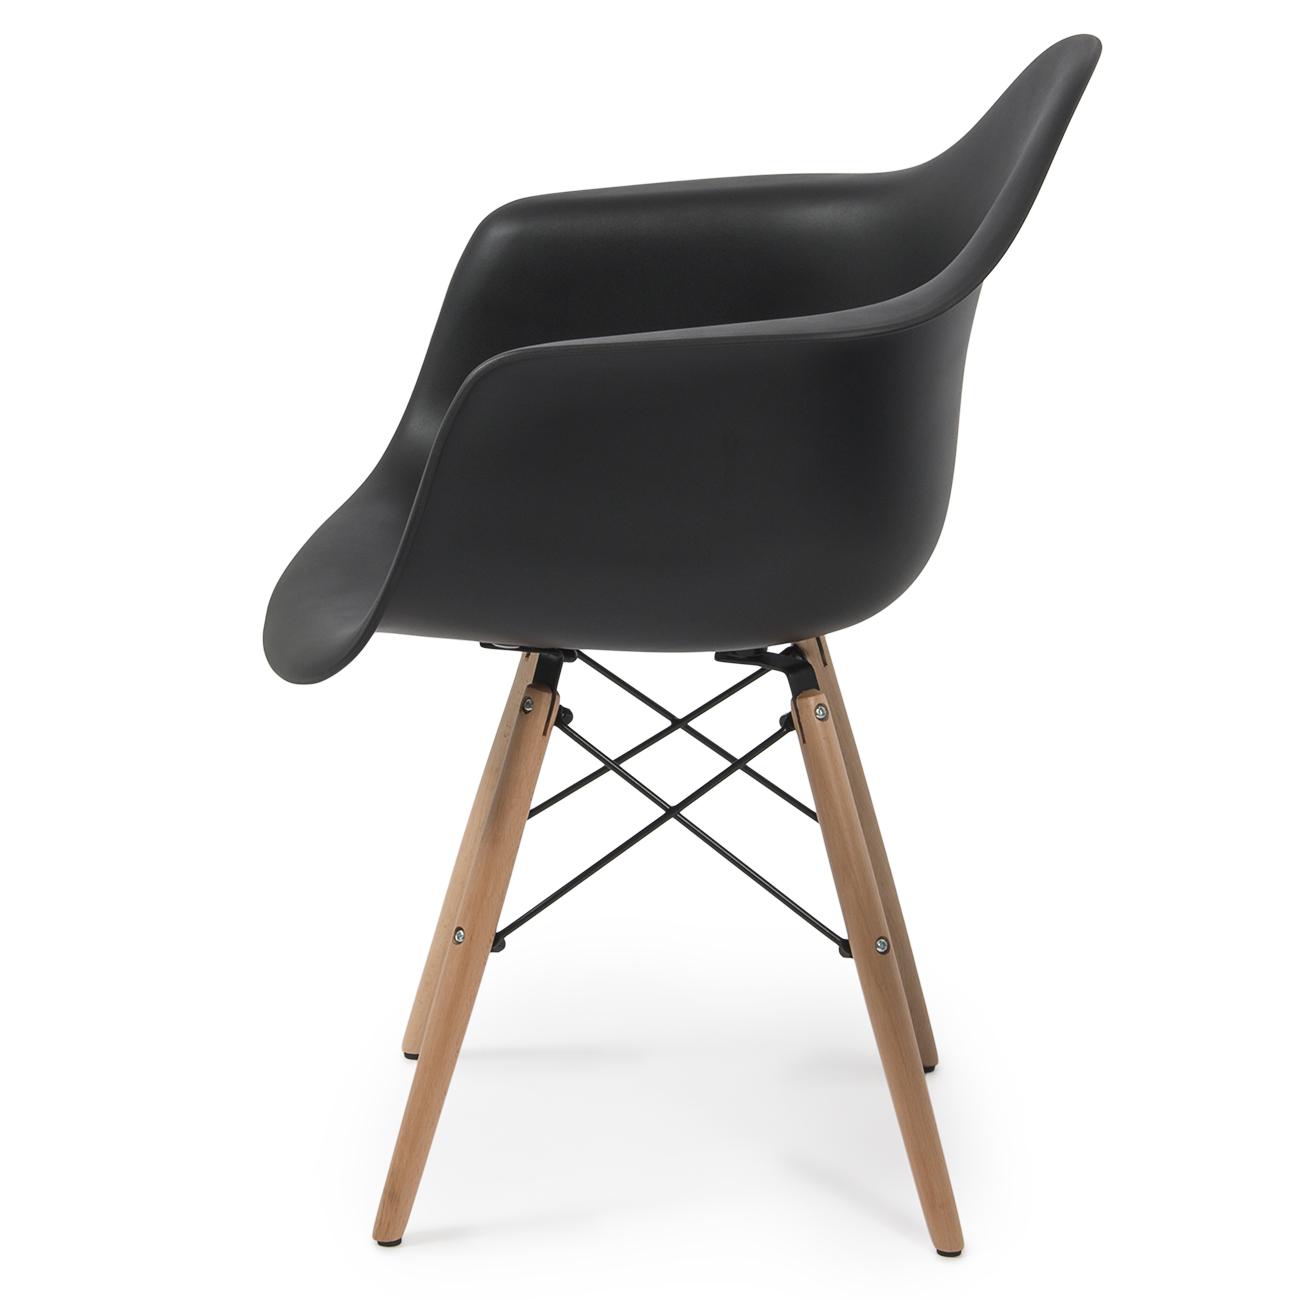 NEW Set of 2 Eames DSW Mid Century Dining Arm Chair  : 014 hg 30202 bk2 from www.ebay.com size 1300 x 1300 jpeg 335kB